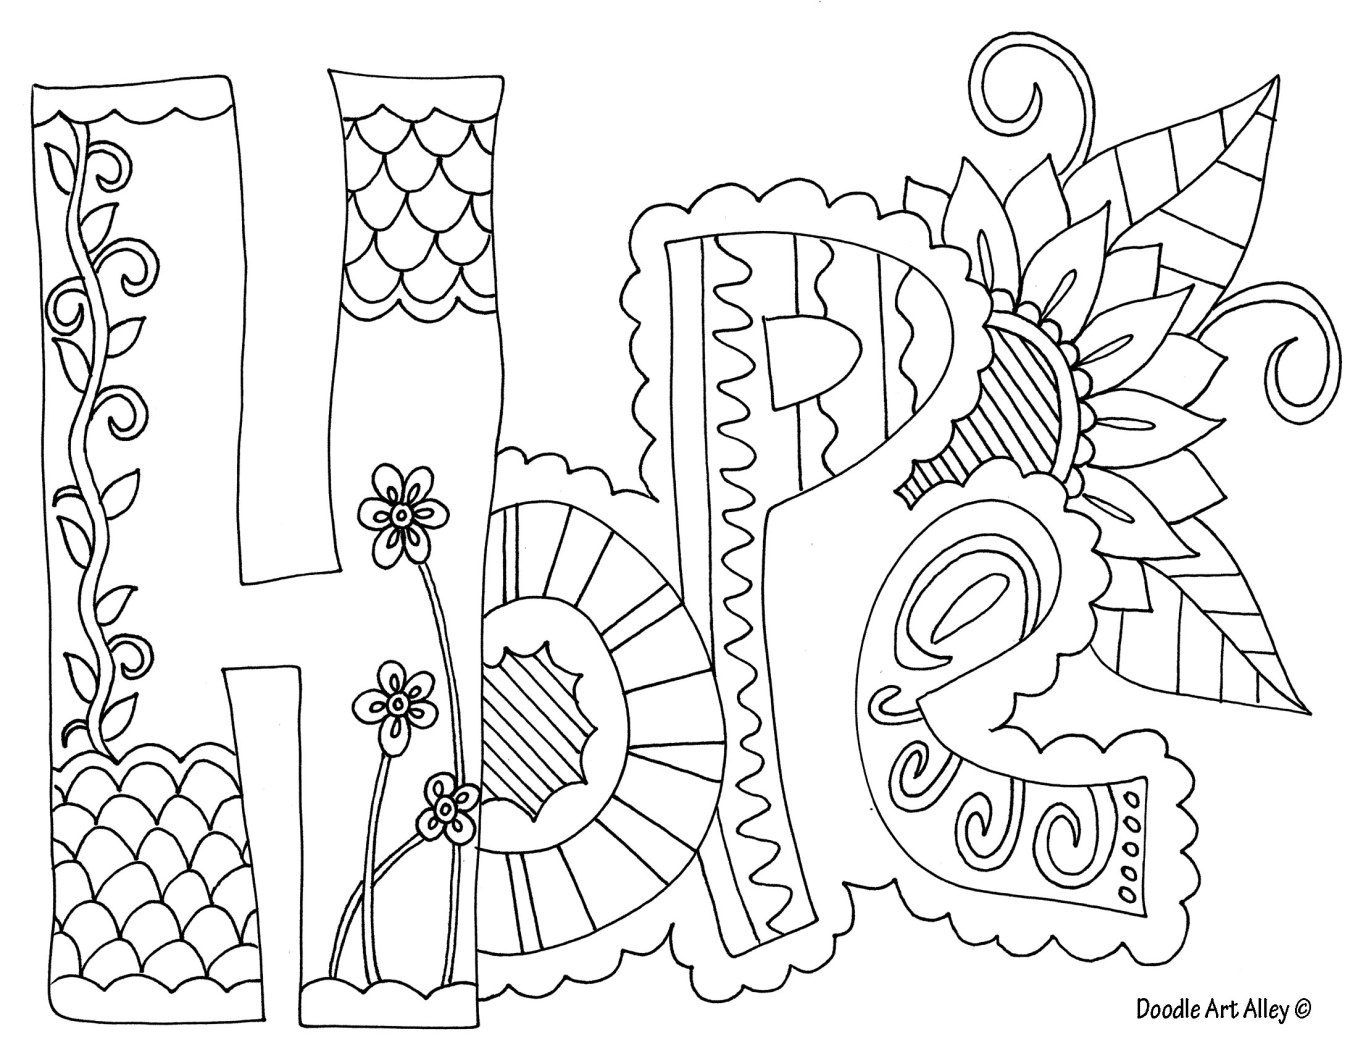 Hope, coloring page to encourage discussion in a creative